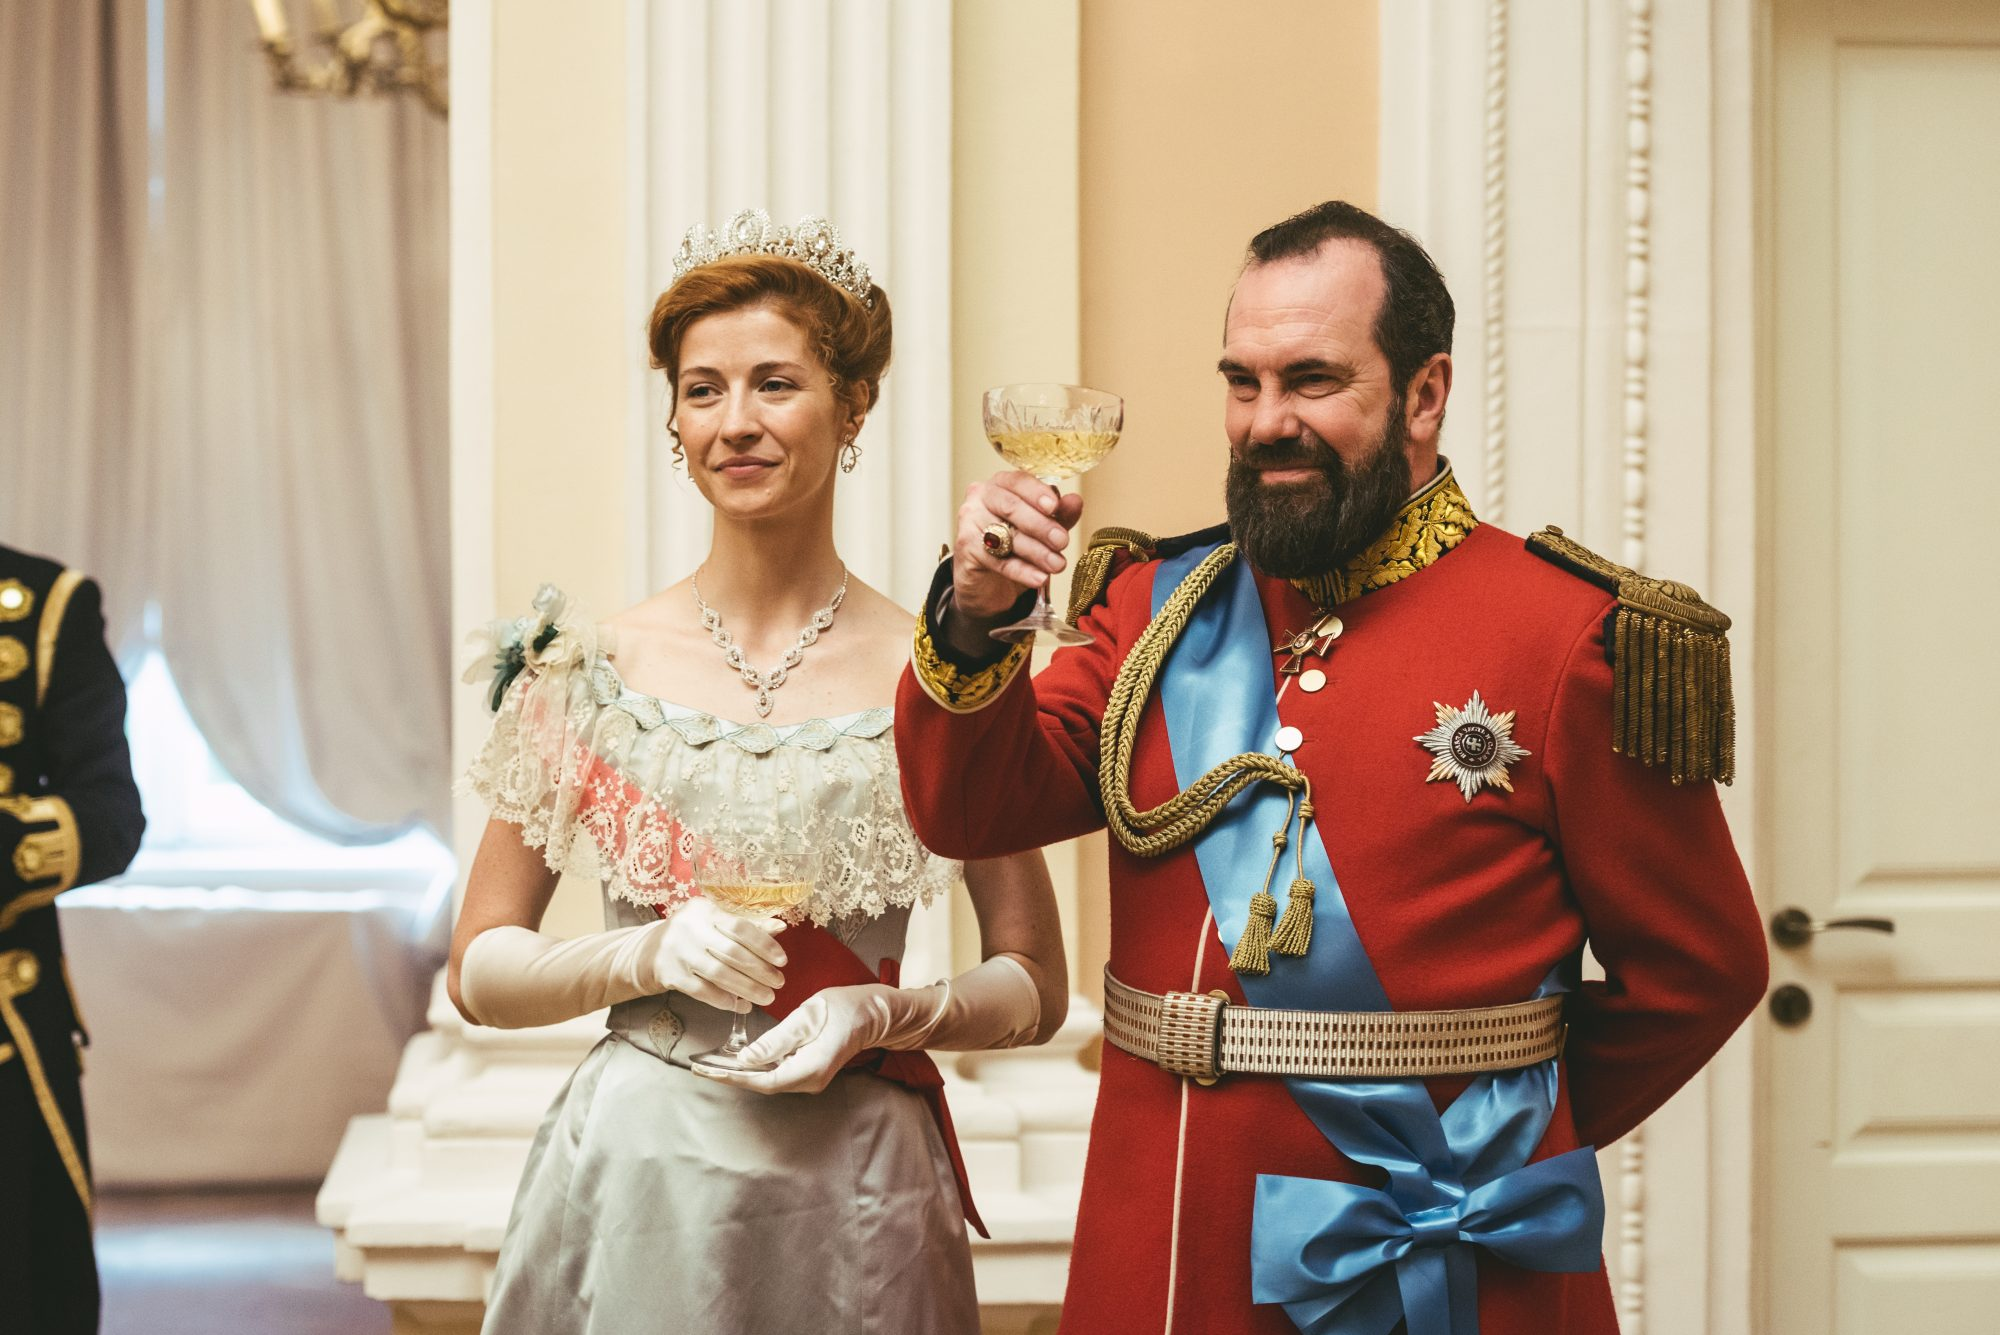 If You Love The Crown, You've Got to Watch Netflix's The Last Czars